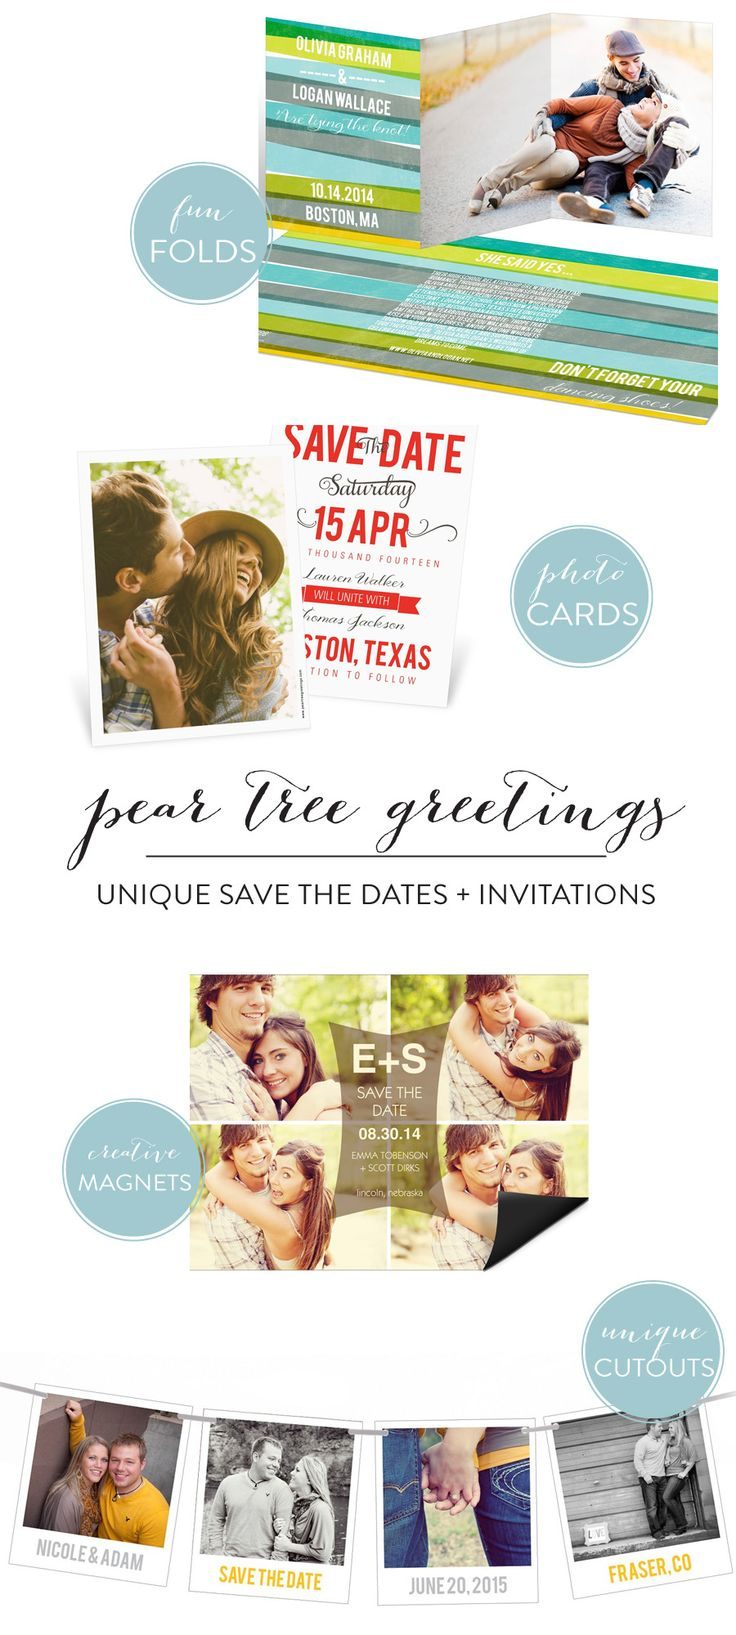 We are loving these save the dates from Pear Tree Greetings!   Read more - http://www.stylemepretty.com/2013/11/23/unique-save-the-dates-from-pear-tree-greetings-a-discount/